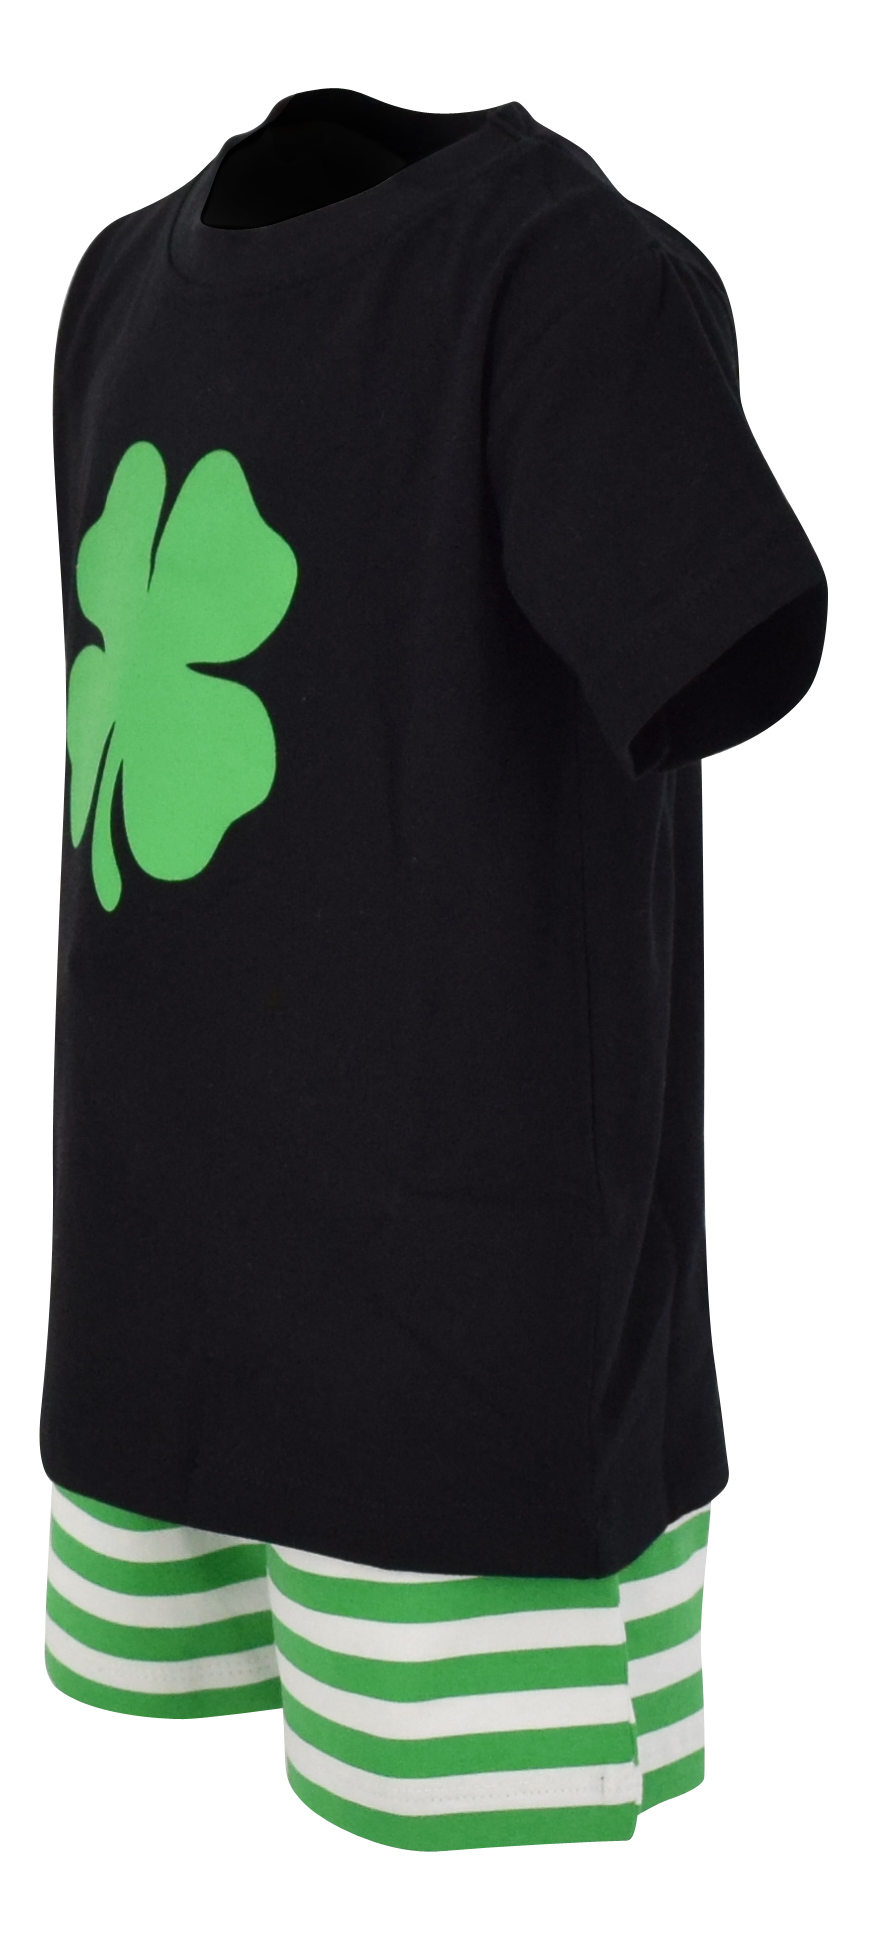 Boys-2-Piece-ST-Patricks-Day-Clover-Outfit-2t-3t-4t-5-6-7-8-Toddler-Kids-Clothes thumbnail 38